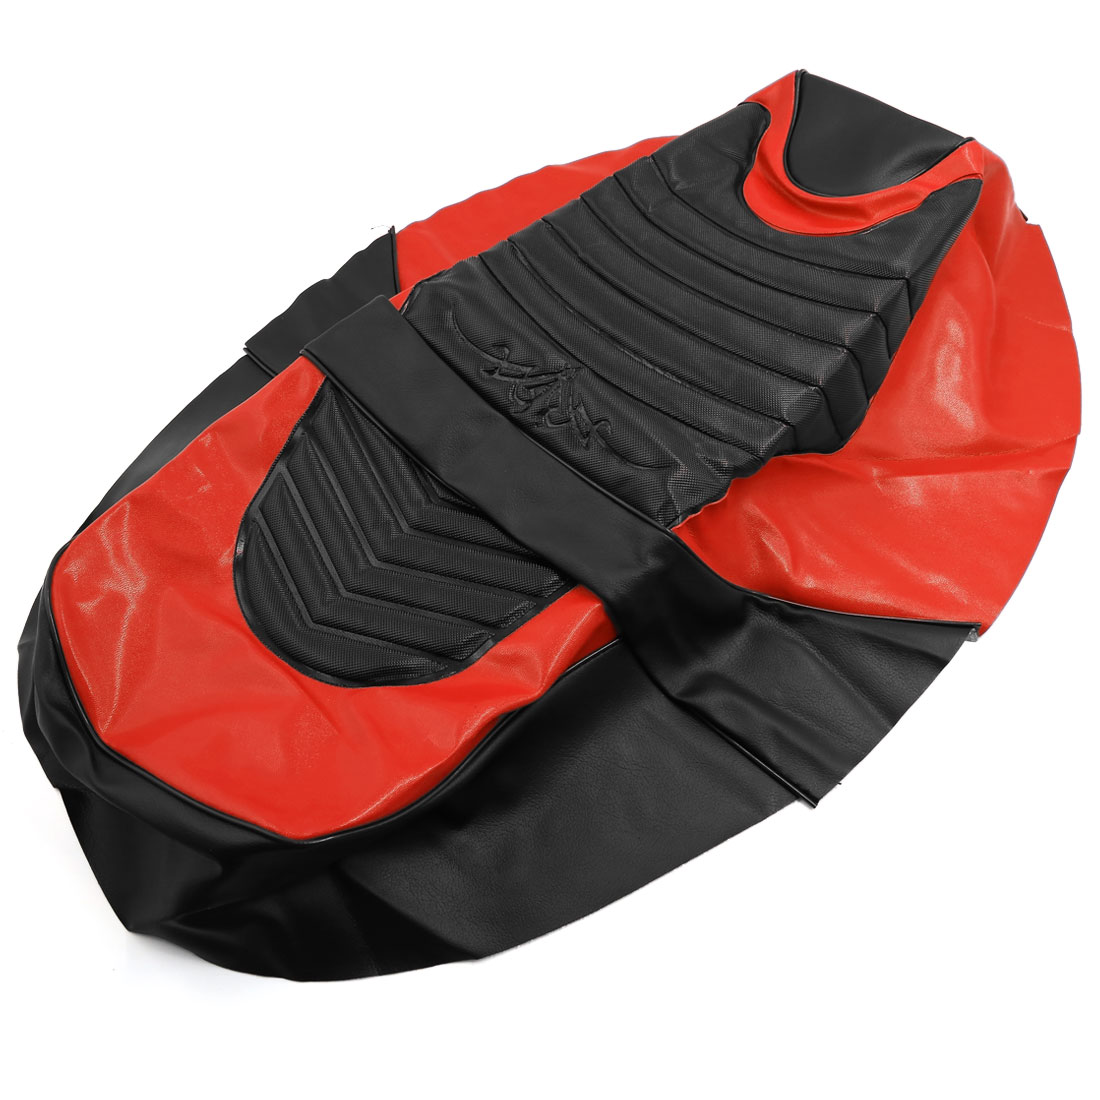 Woman Motorcycle Waterproof Faux Leather Saddle Seat Cover Black Red for Yamaha